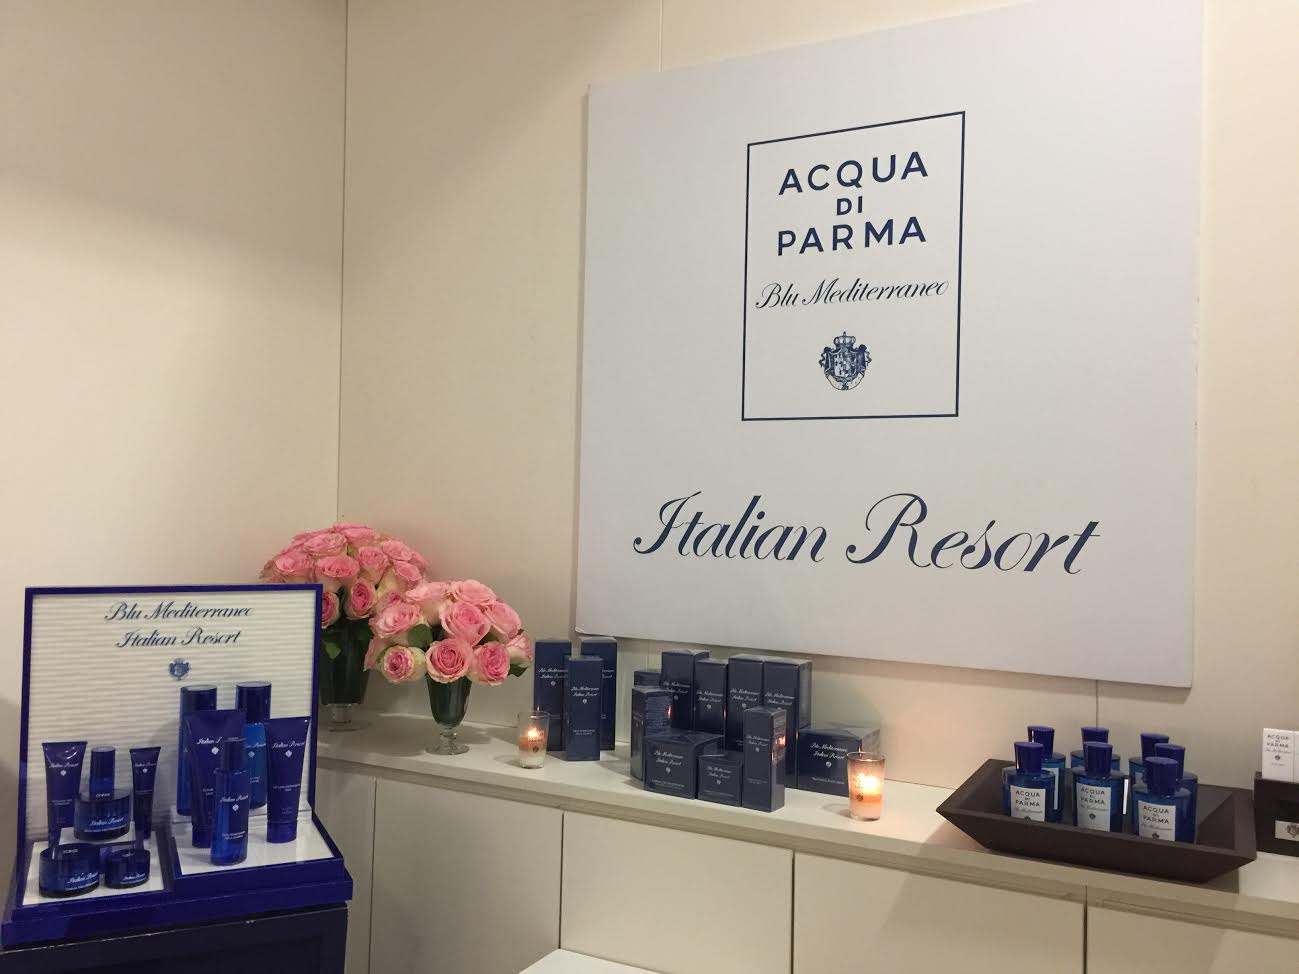 italian-resort-acqua-di-parma